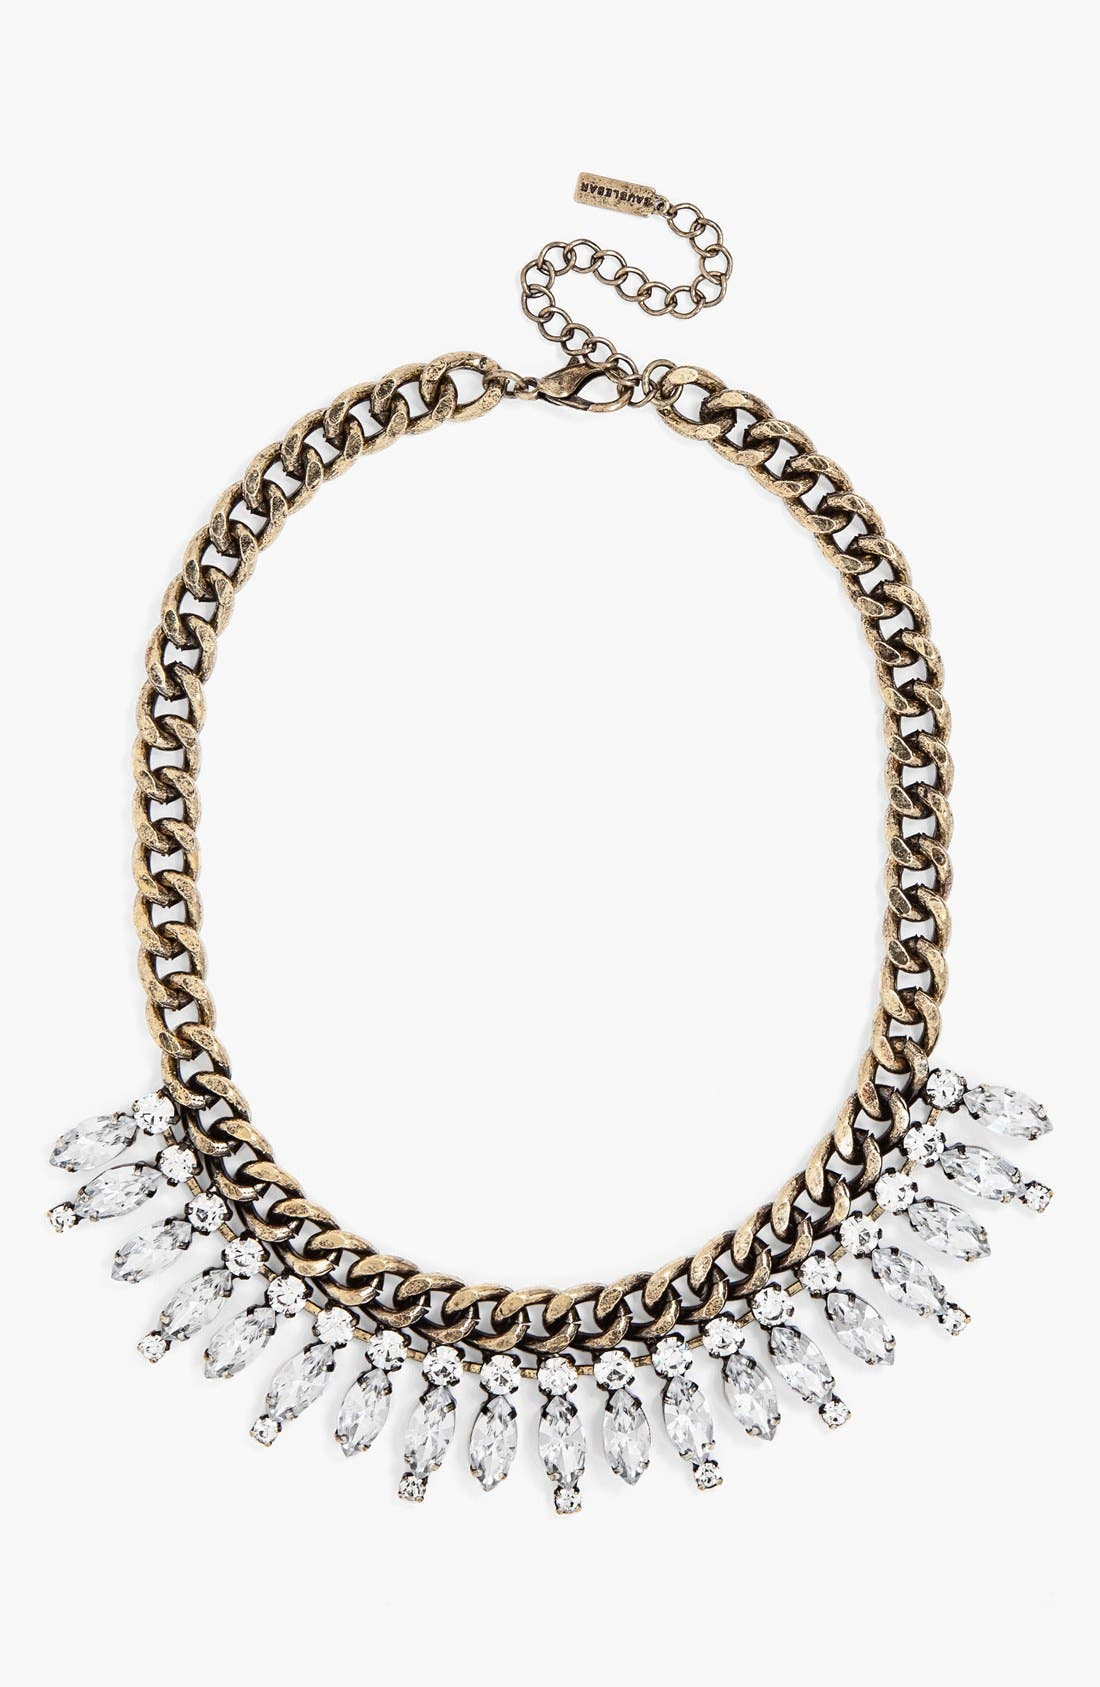 Alternate Image 1 Selected - BaubleBar 'Crystal Ray' Collar Necklace